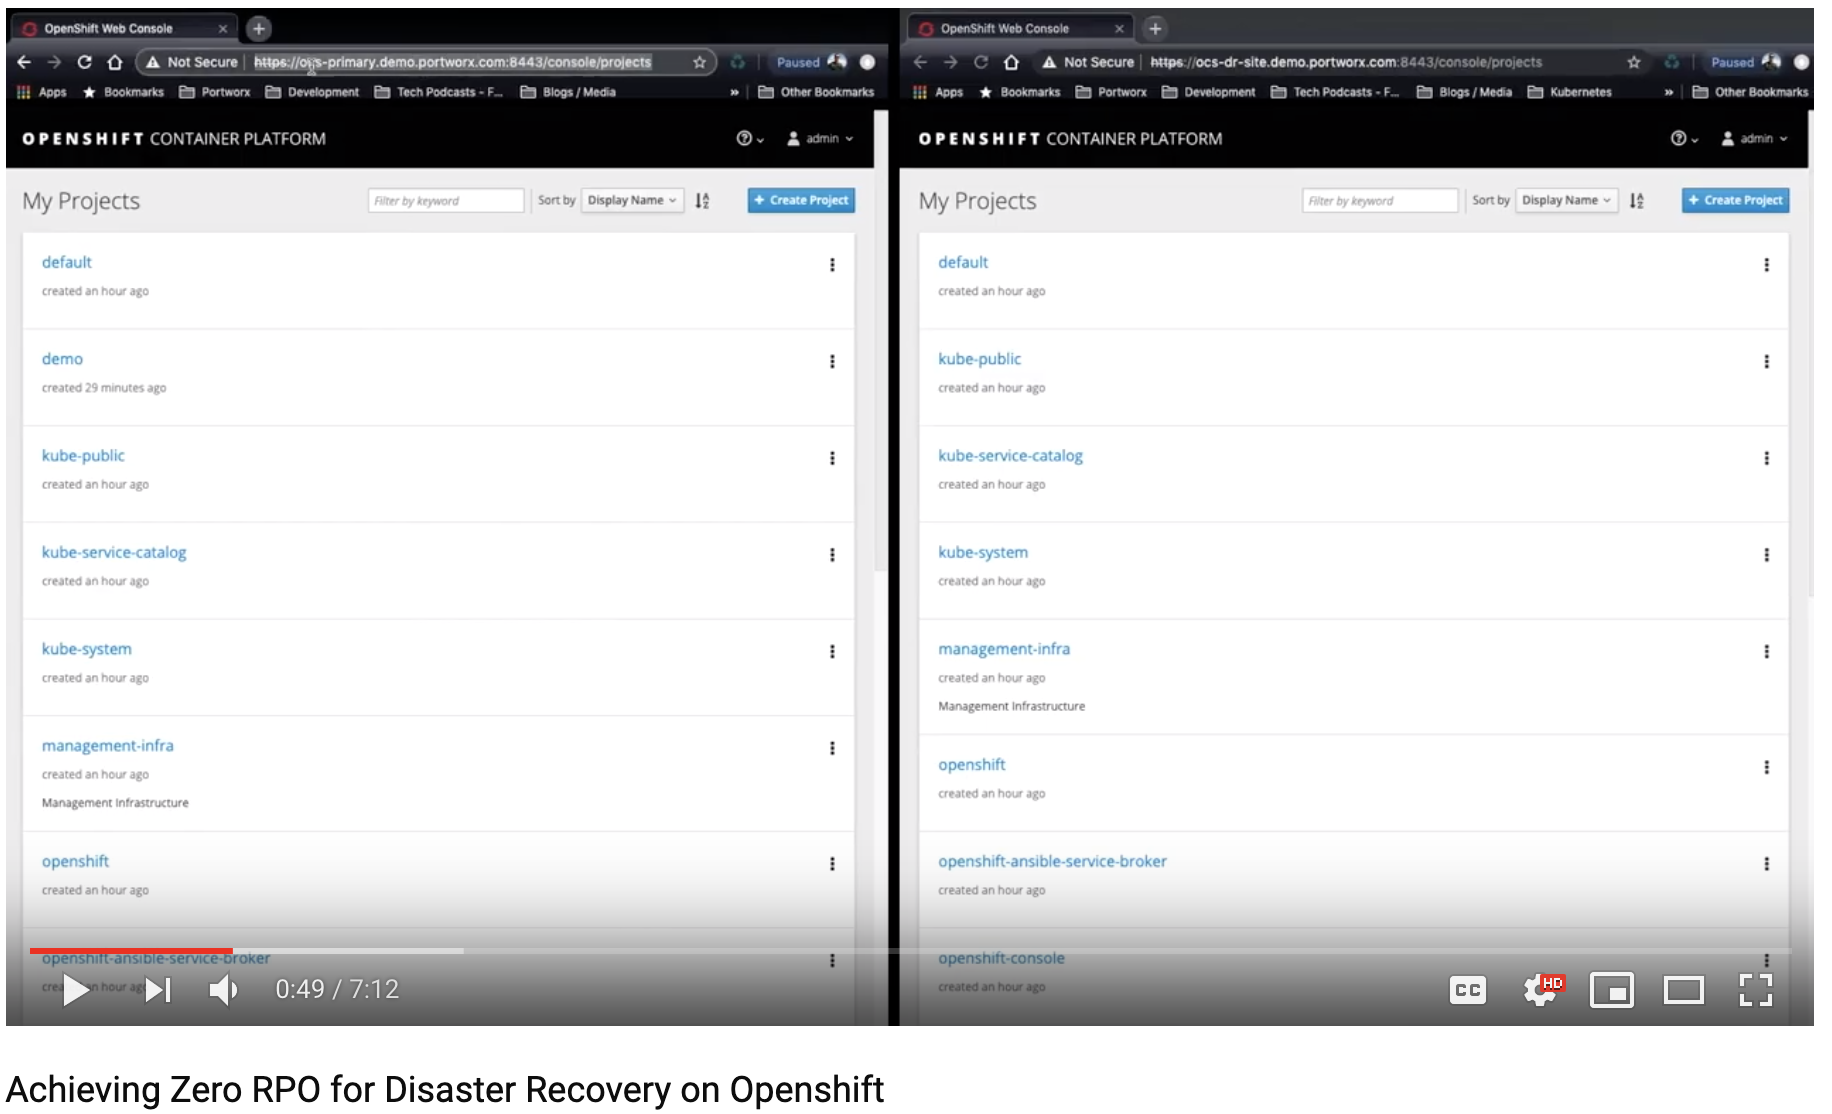 How to achieve Disaster Recovery (DR) for Red Hat OpenShift